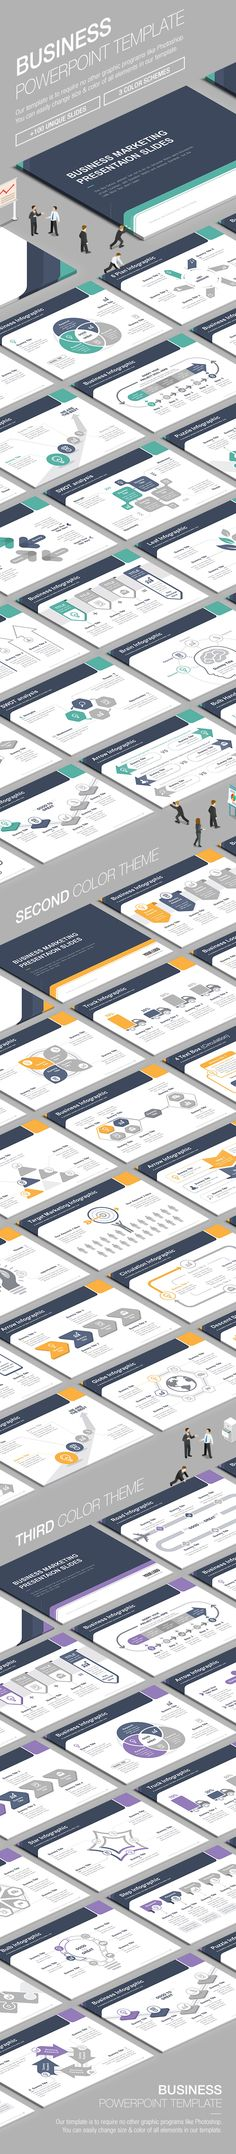 Business Powerpoint Template 003 - Business PowerPoint Templates